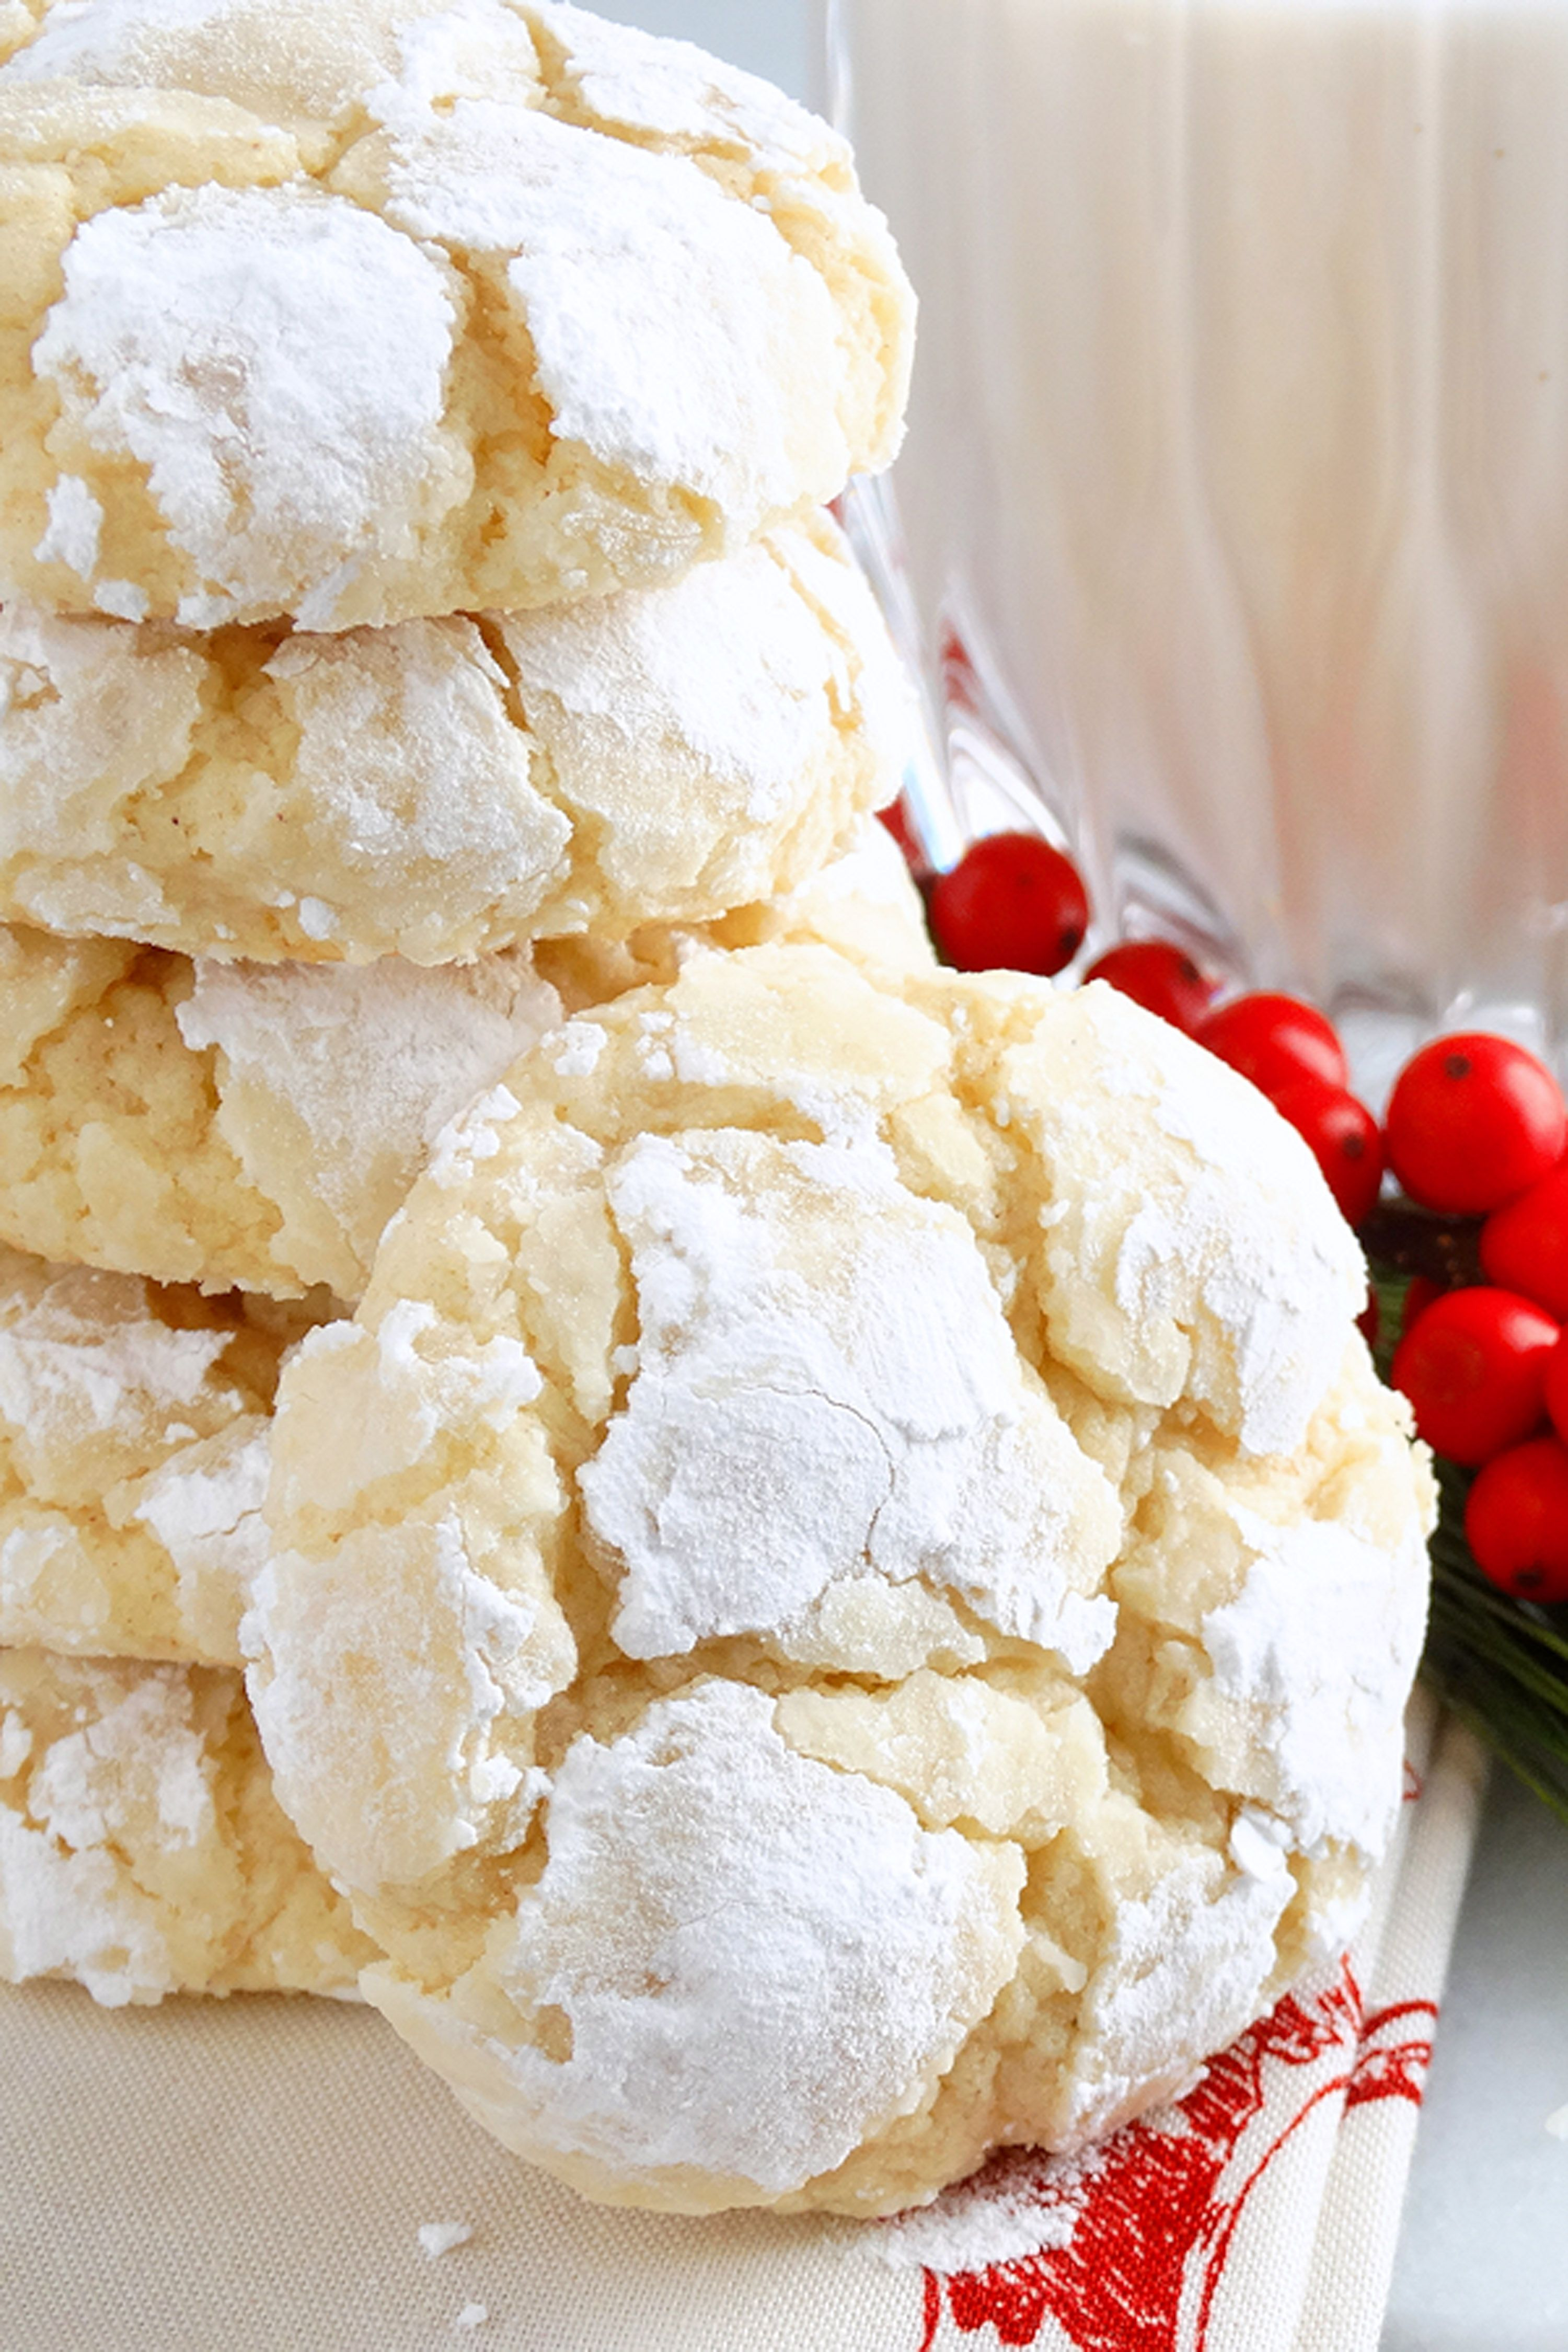 50+ Best Christmas Cookie Recipes 2017 - Easy Ideas for Holiday ...